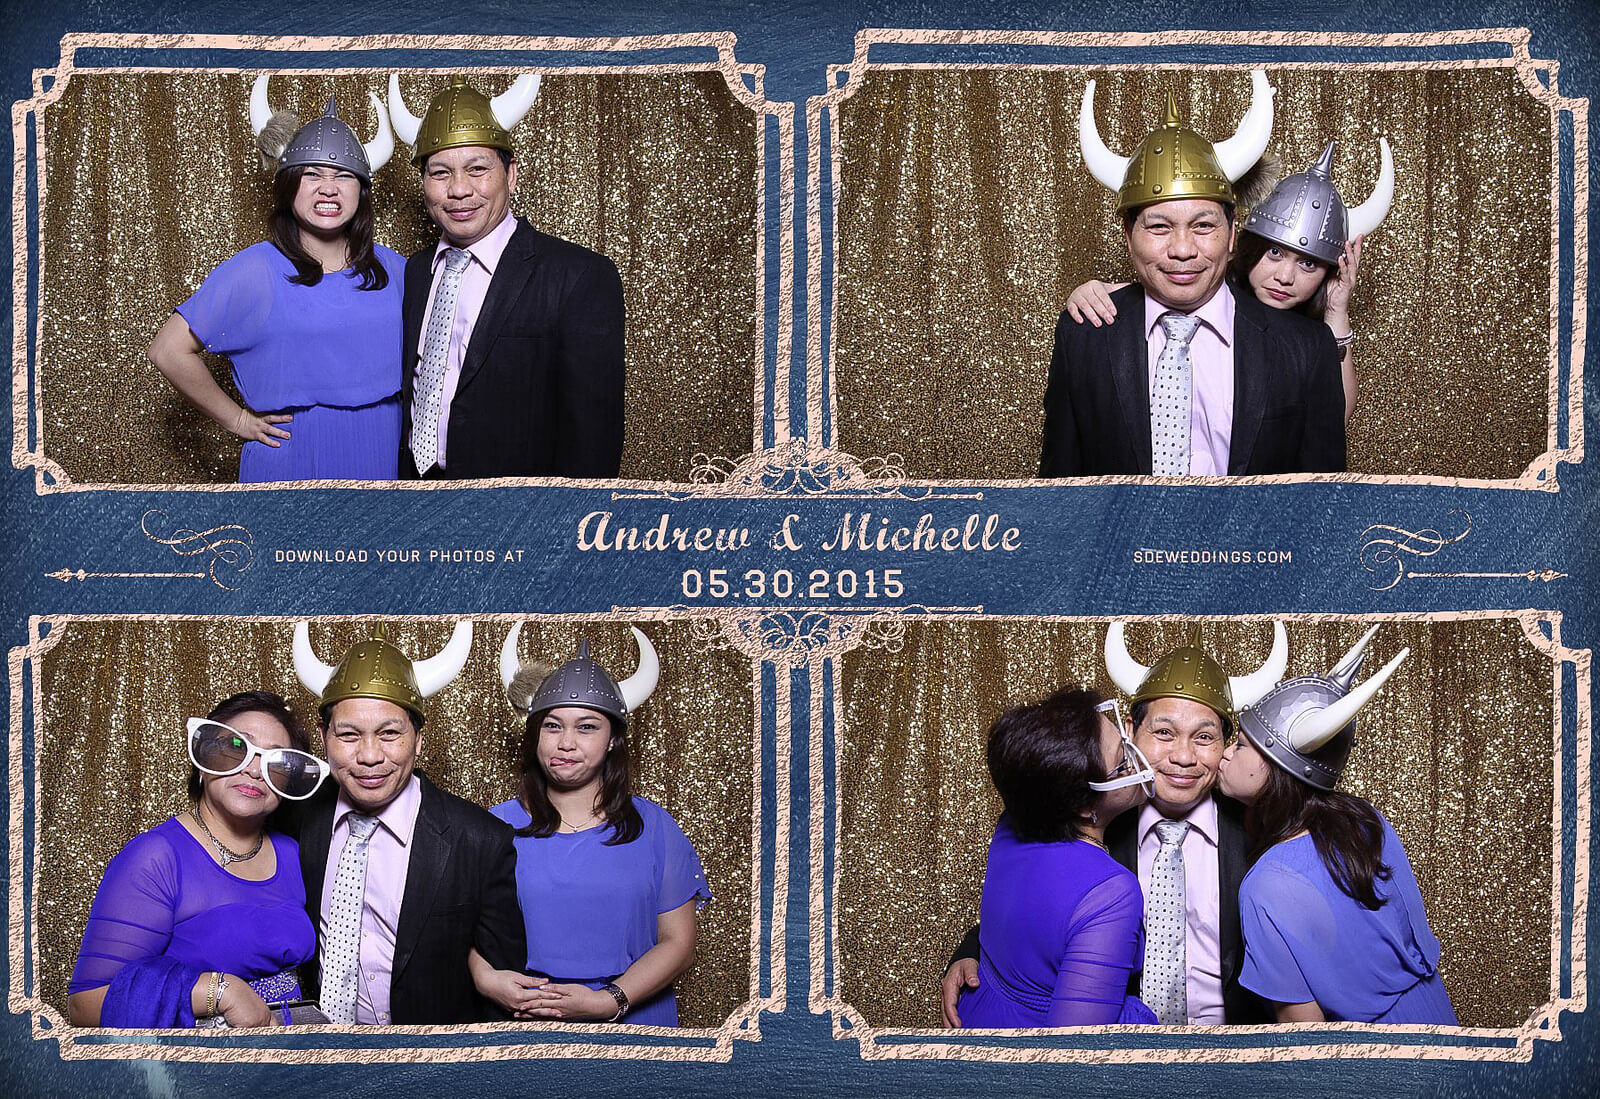 Toronto Police Wedding Photobooth at Peel Regional Police Association Banquet Hall 10